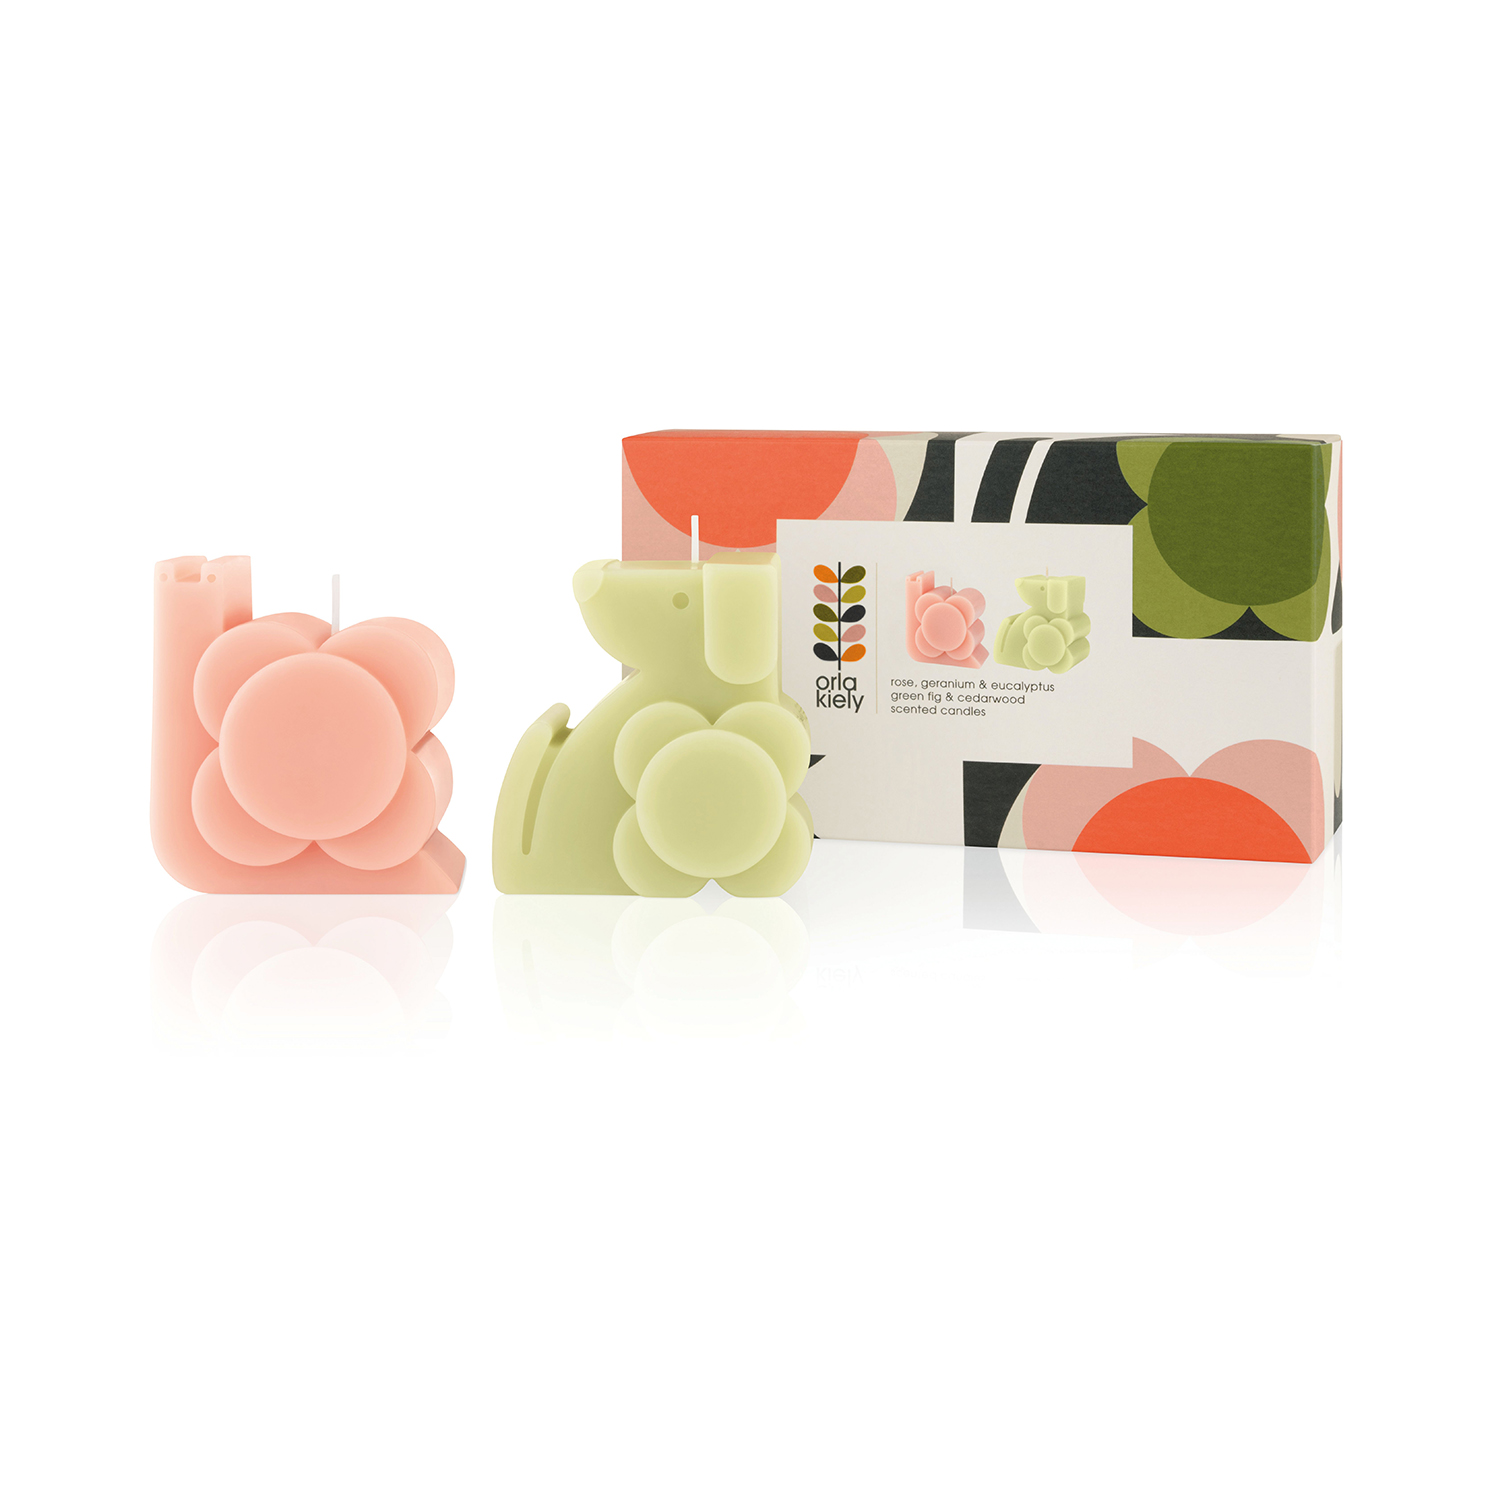 Orla Kiely - Dog & Snail Moulded Scented Candle Gift Set in Presentation Box